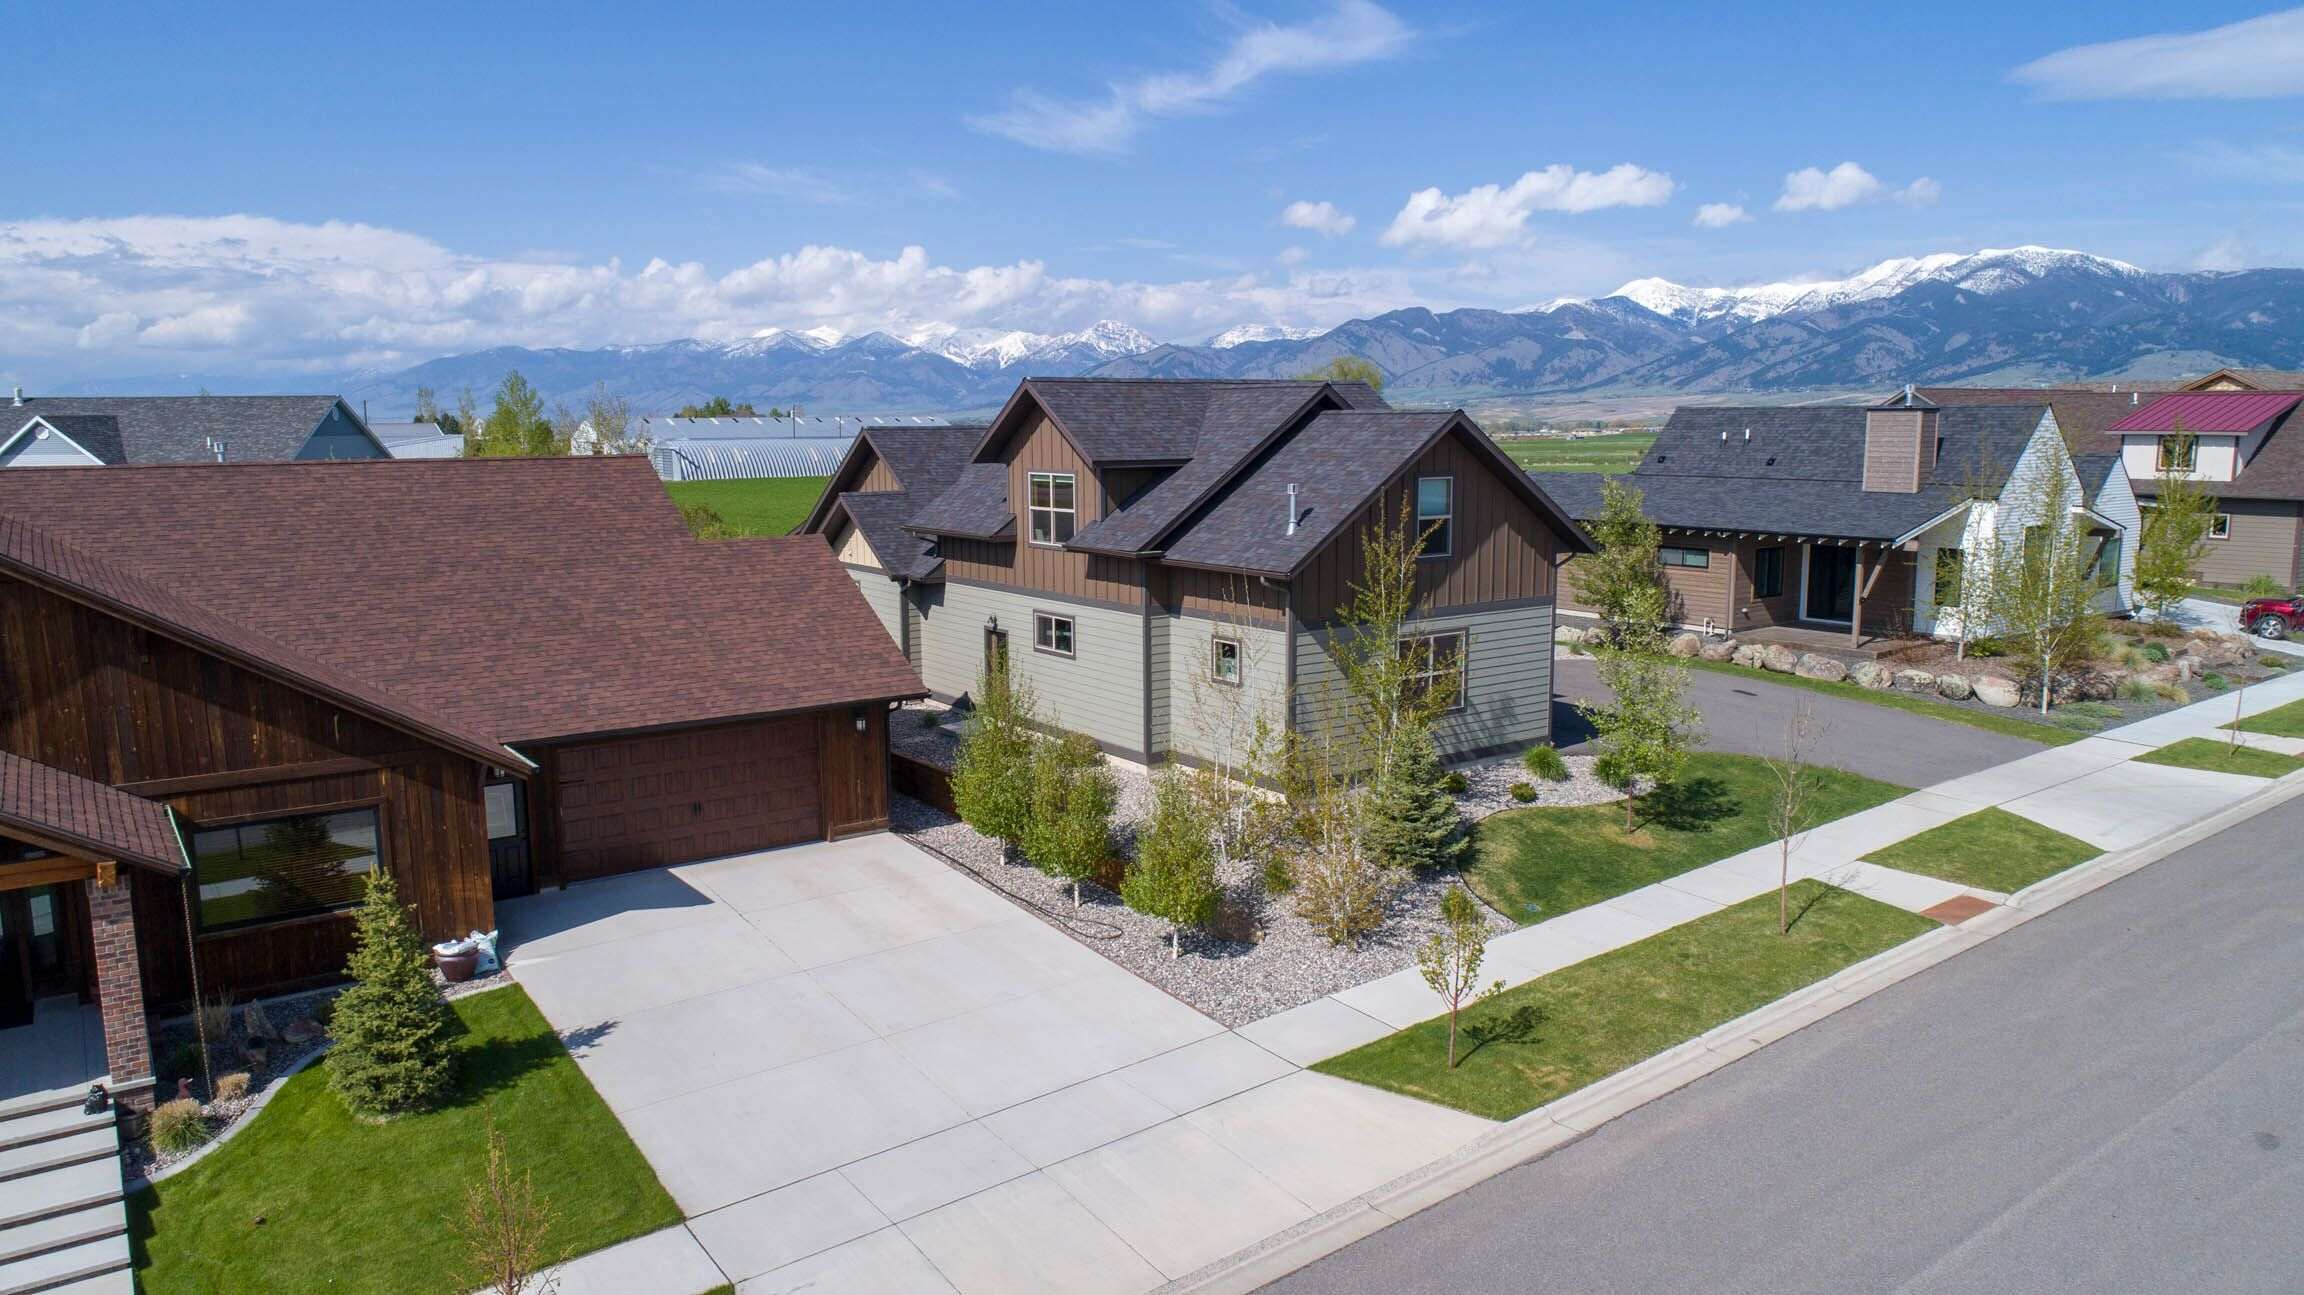 Bozeman home with Mountain and Farmland Views!